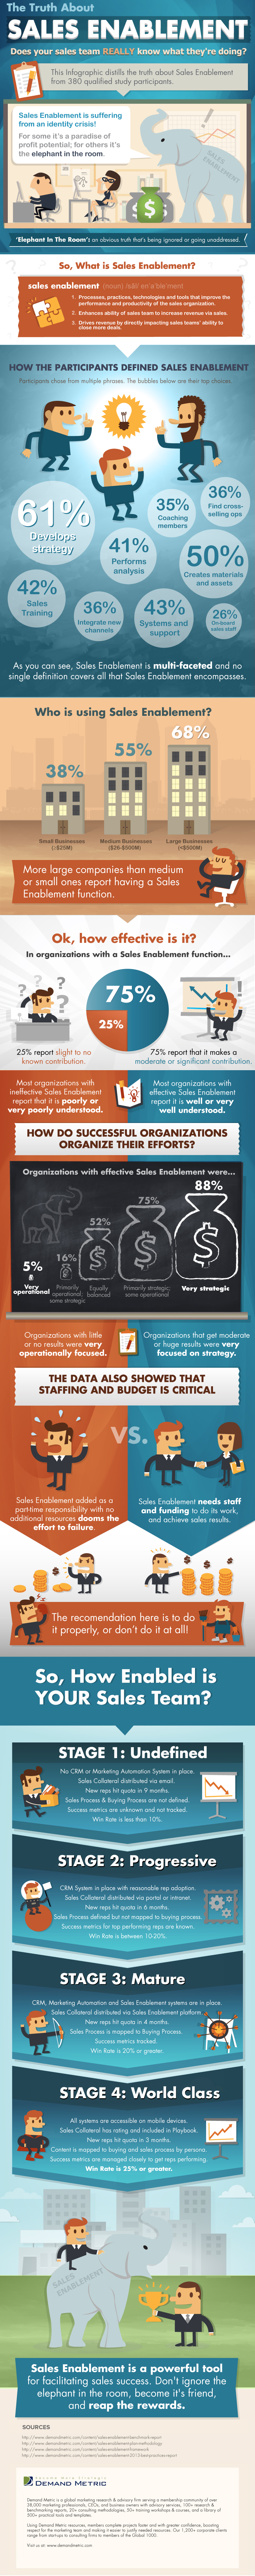 sales-enablement-infographic